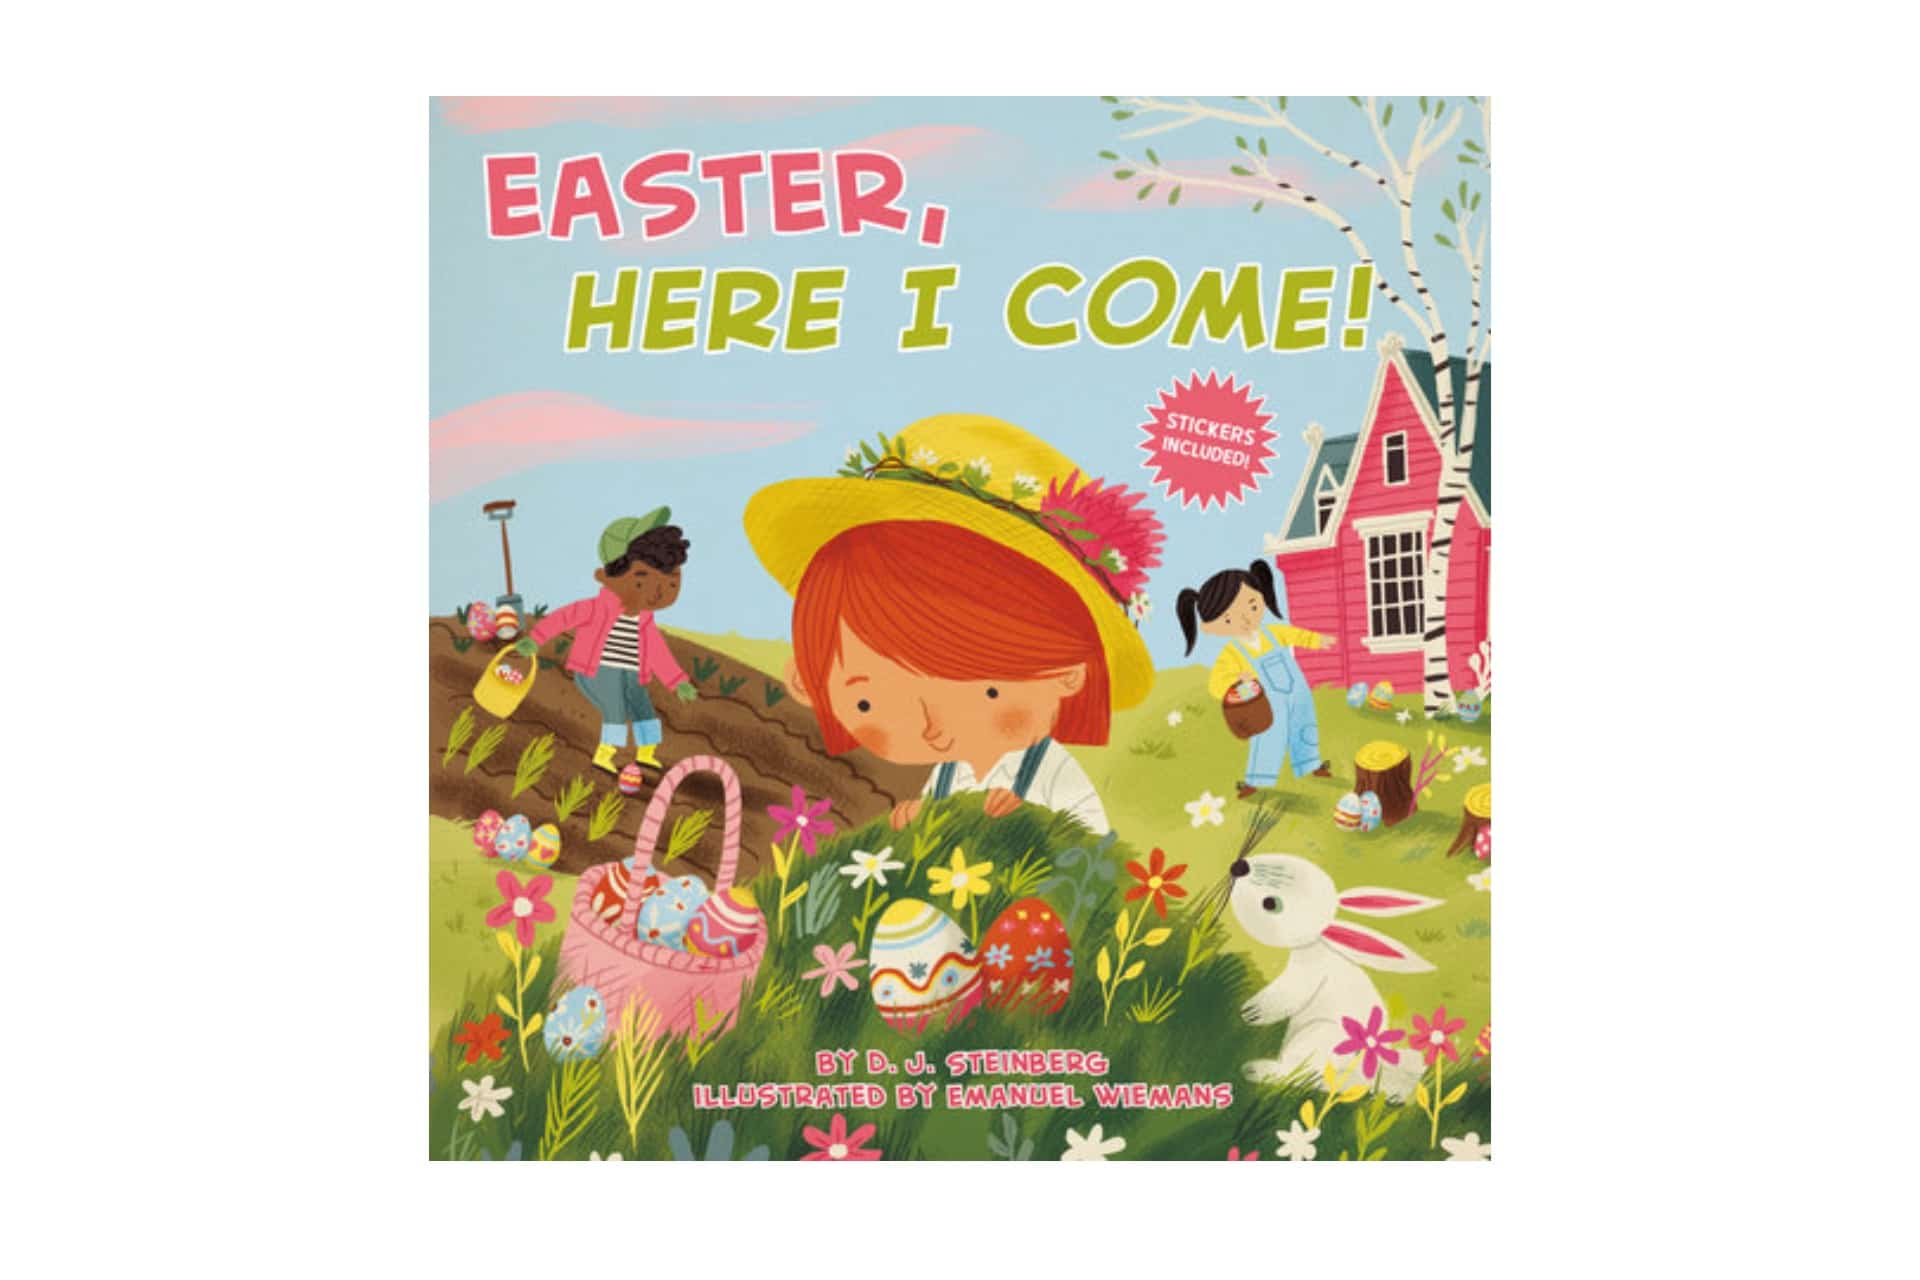 picture book called Easter, here I come with a girl collecting eggs wth friends on the cover